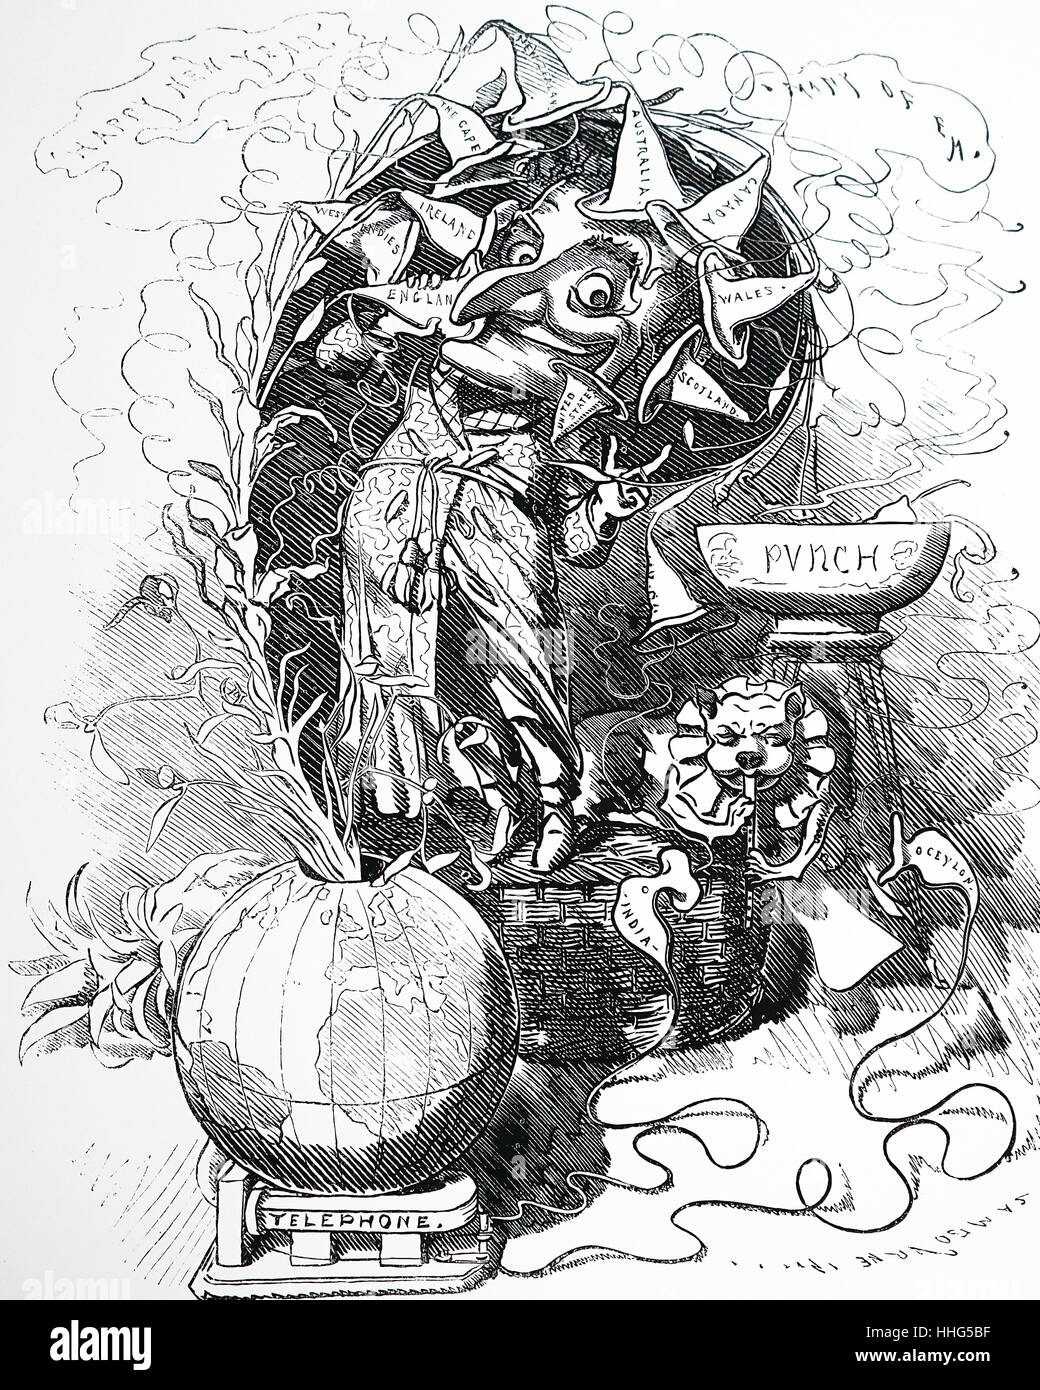 Mr Punch's New-Year greetings to the world - by telephone. Dated 12th January 1878. - Stock Image